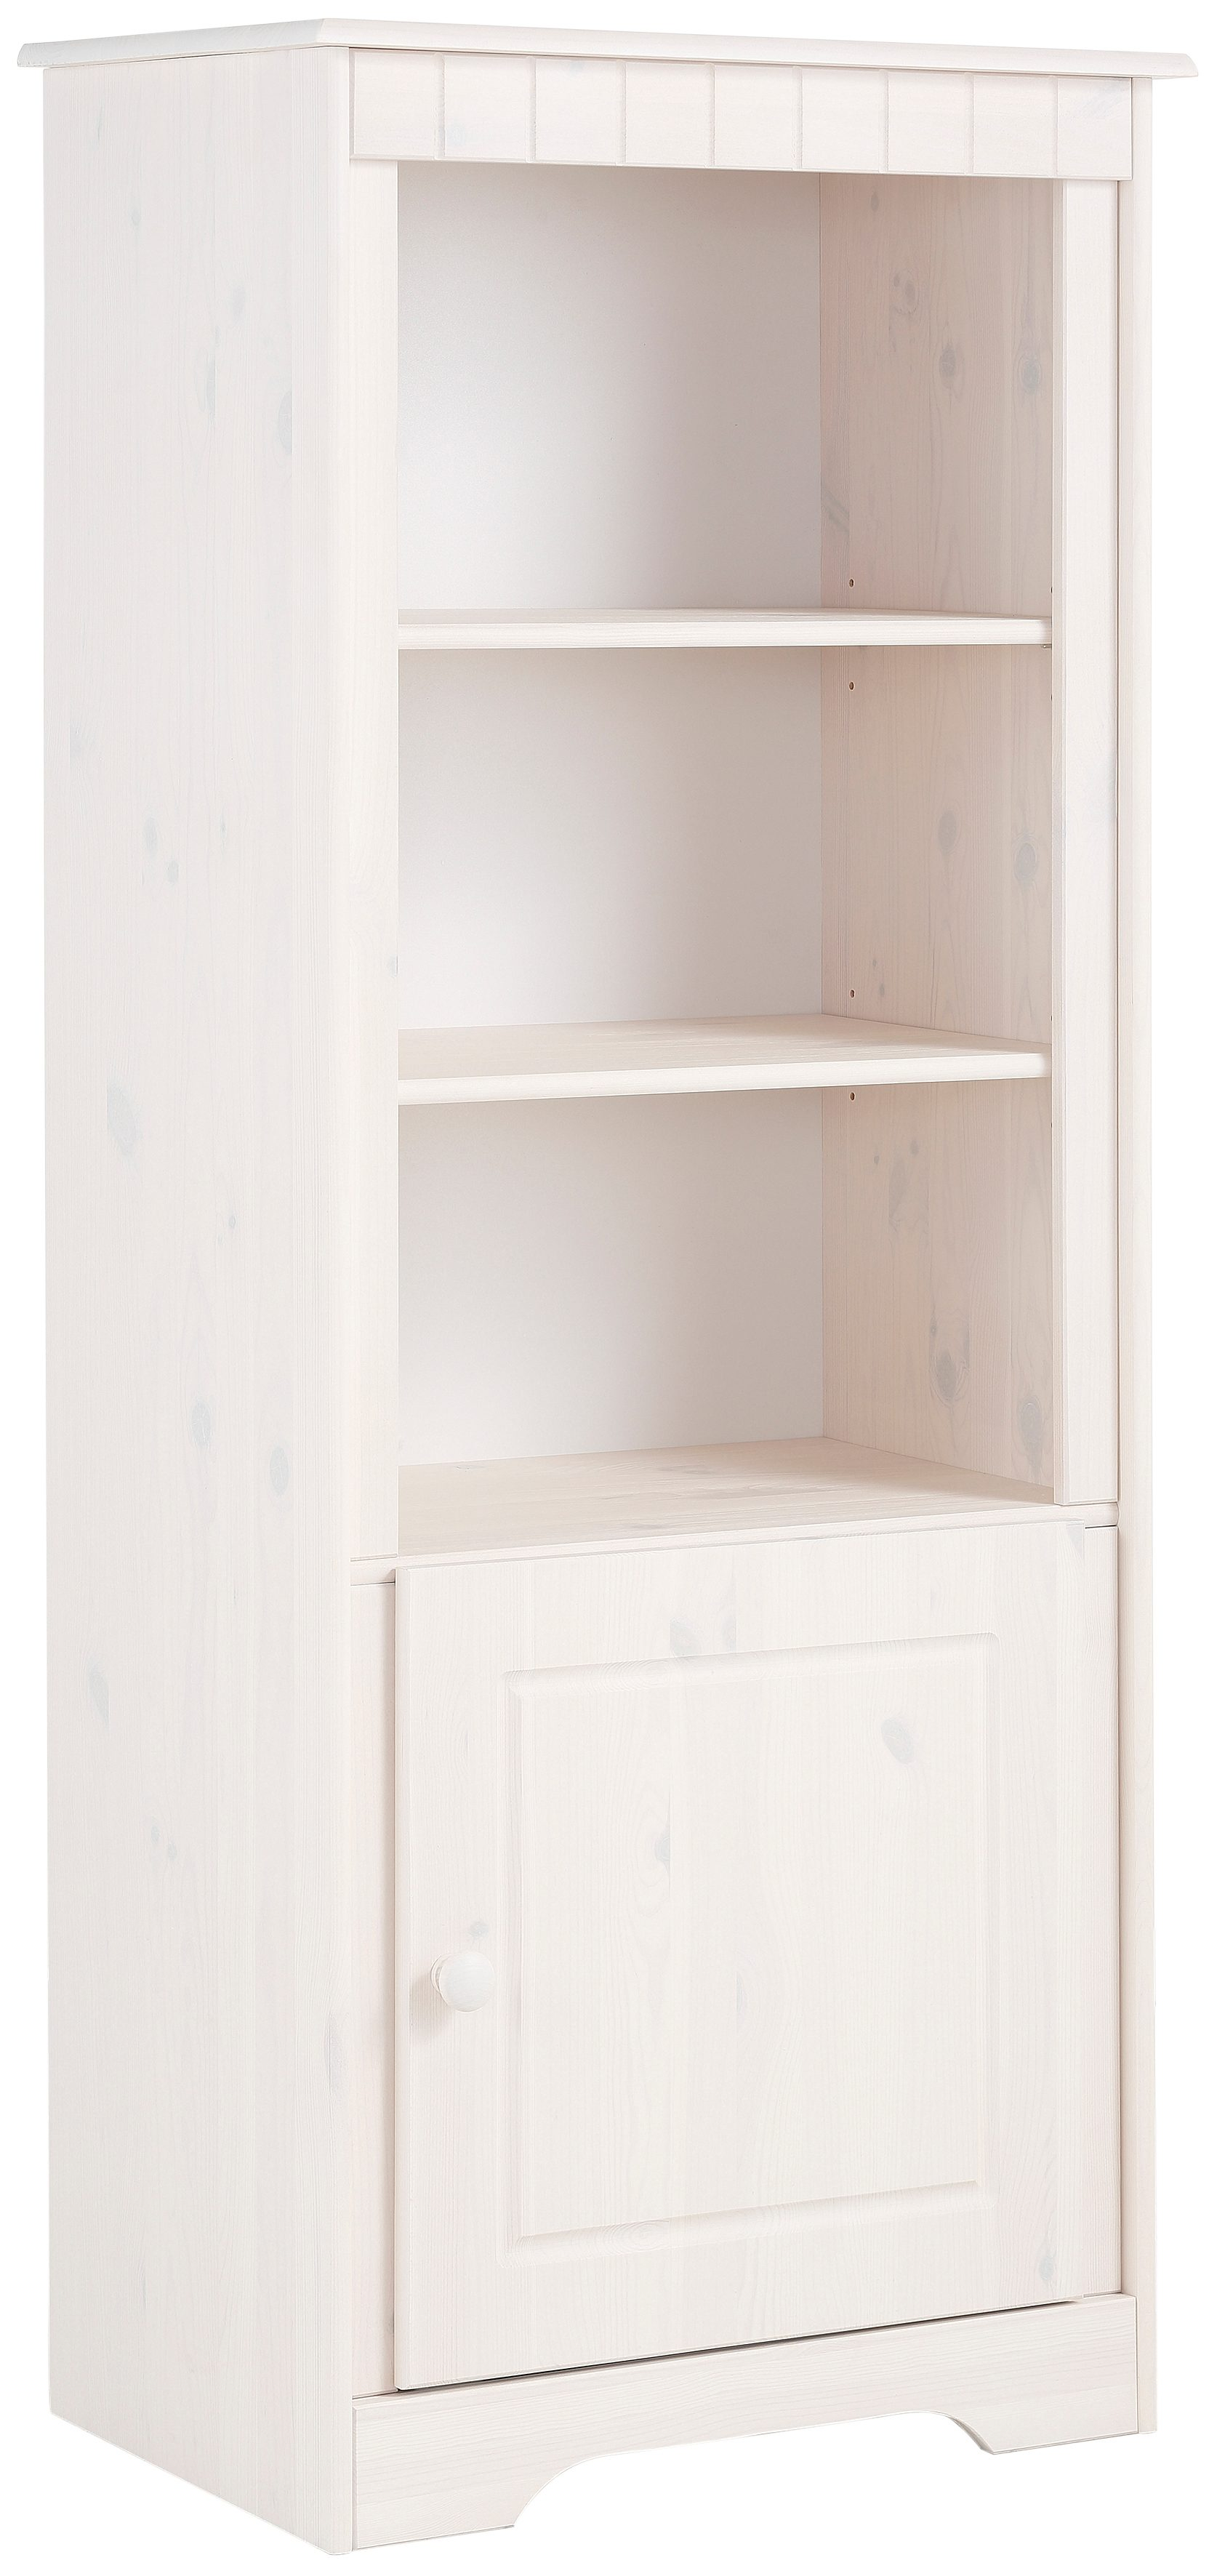 Ladenkast 60 Cm.Ladenkast 60 Cm Breed Hemnes High Cabinet With Mirror Door White